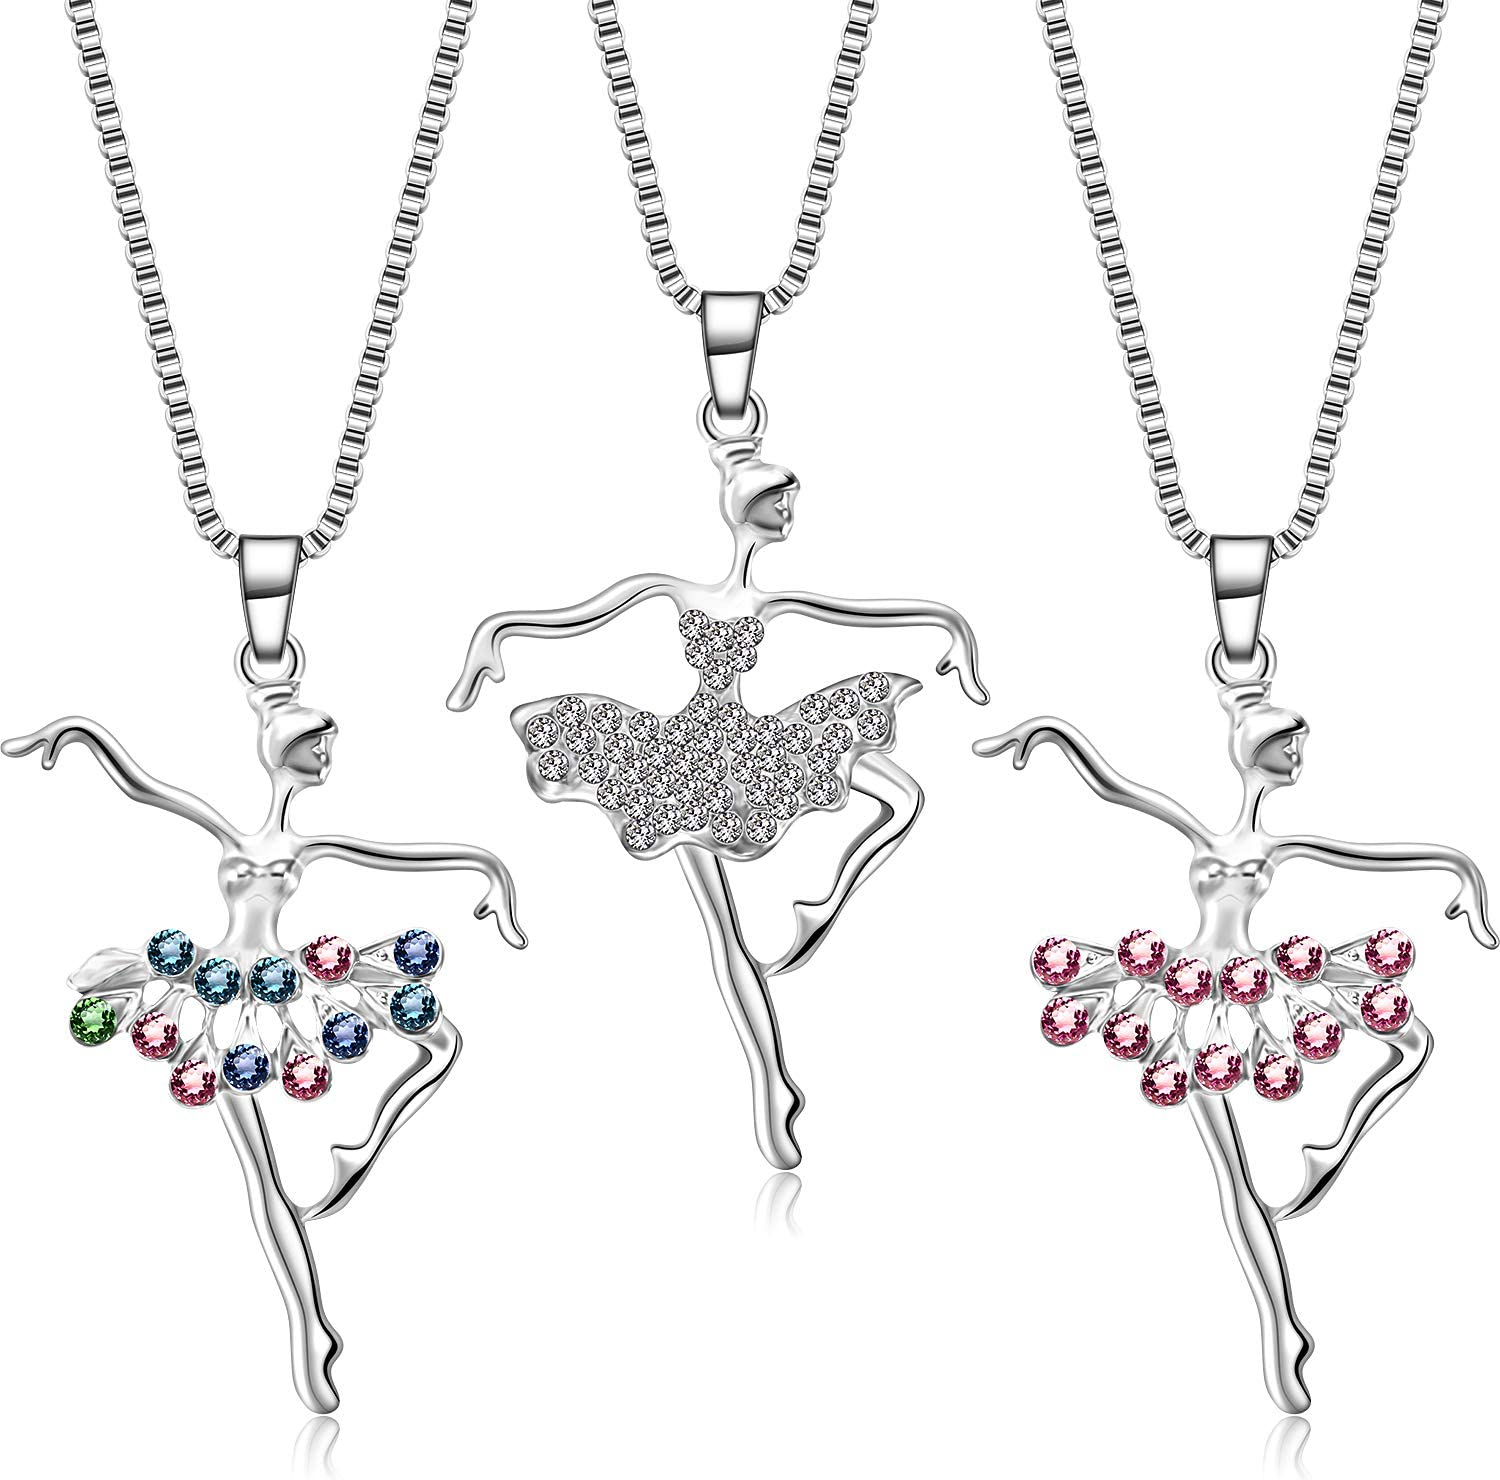 3 Pieces Ballerina Rare Necklace Ballet Tampa Mall Dance Cryst Necklaces Pendant